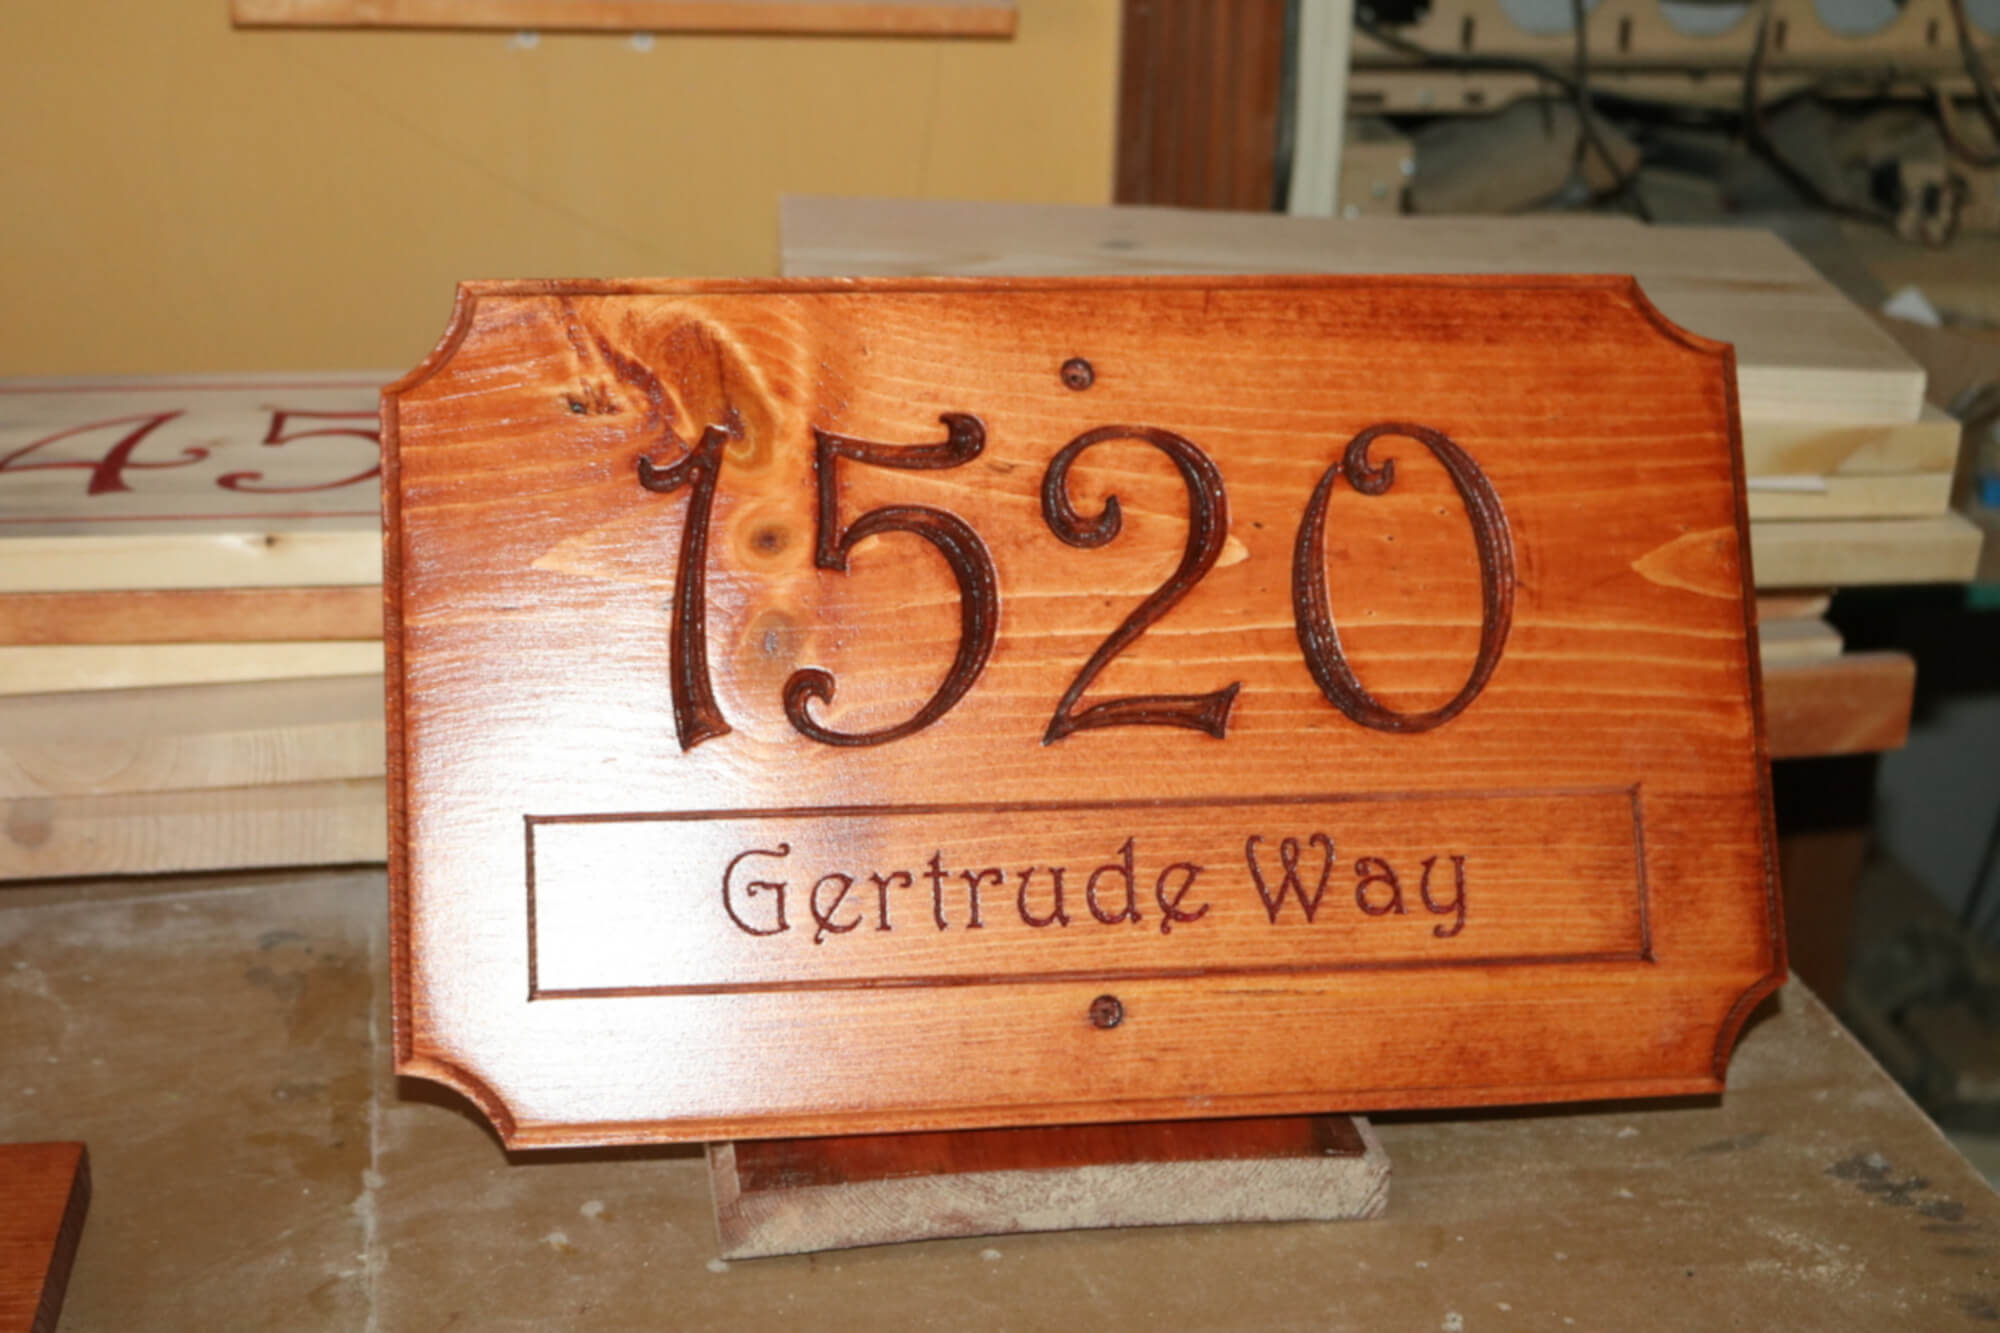 House Street Address Plaque with Street Name Numbers Engraved Wood Sign